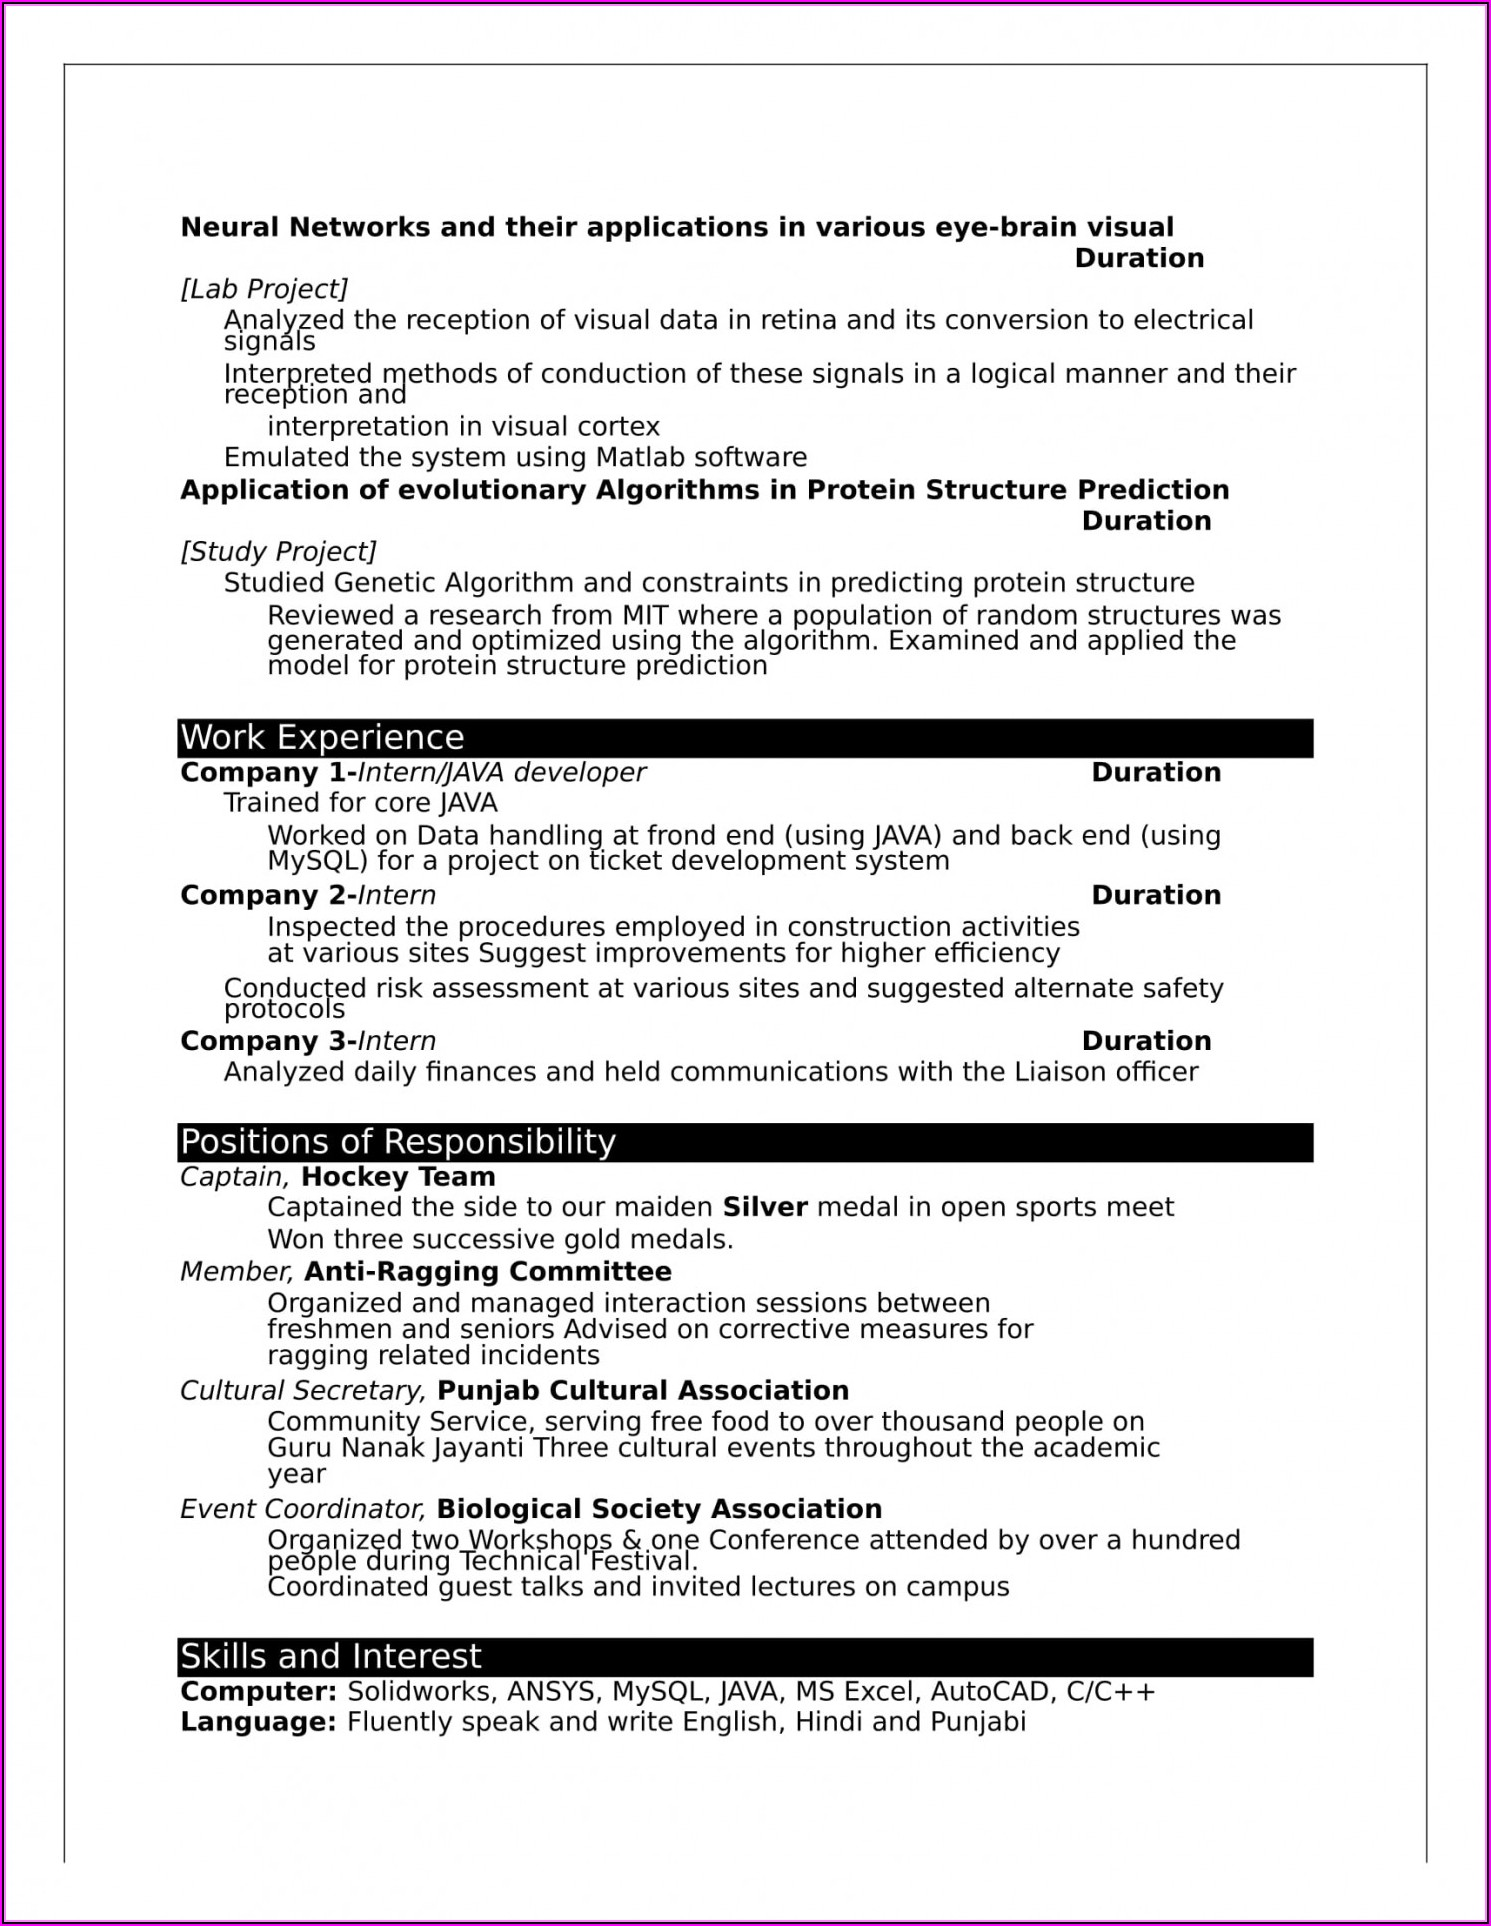 Resume Format For Freshers Free Download Latest